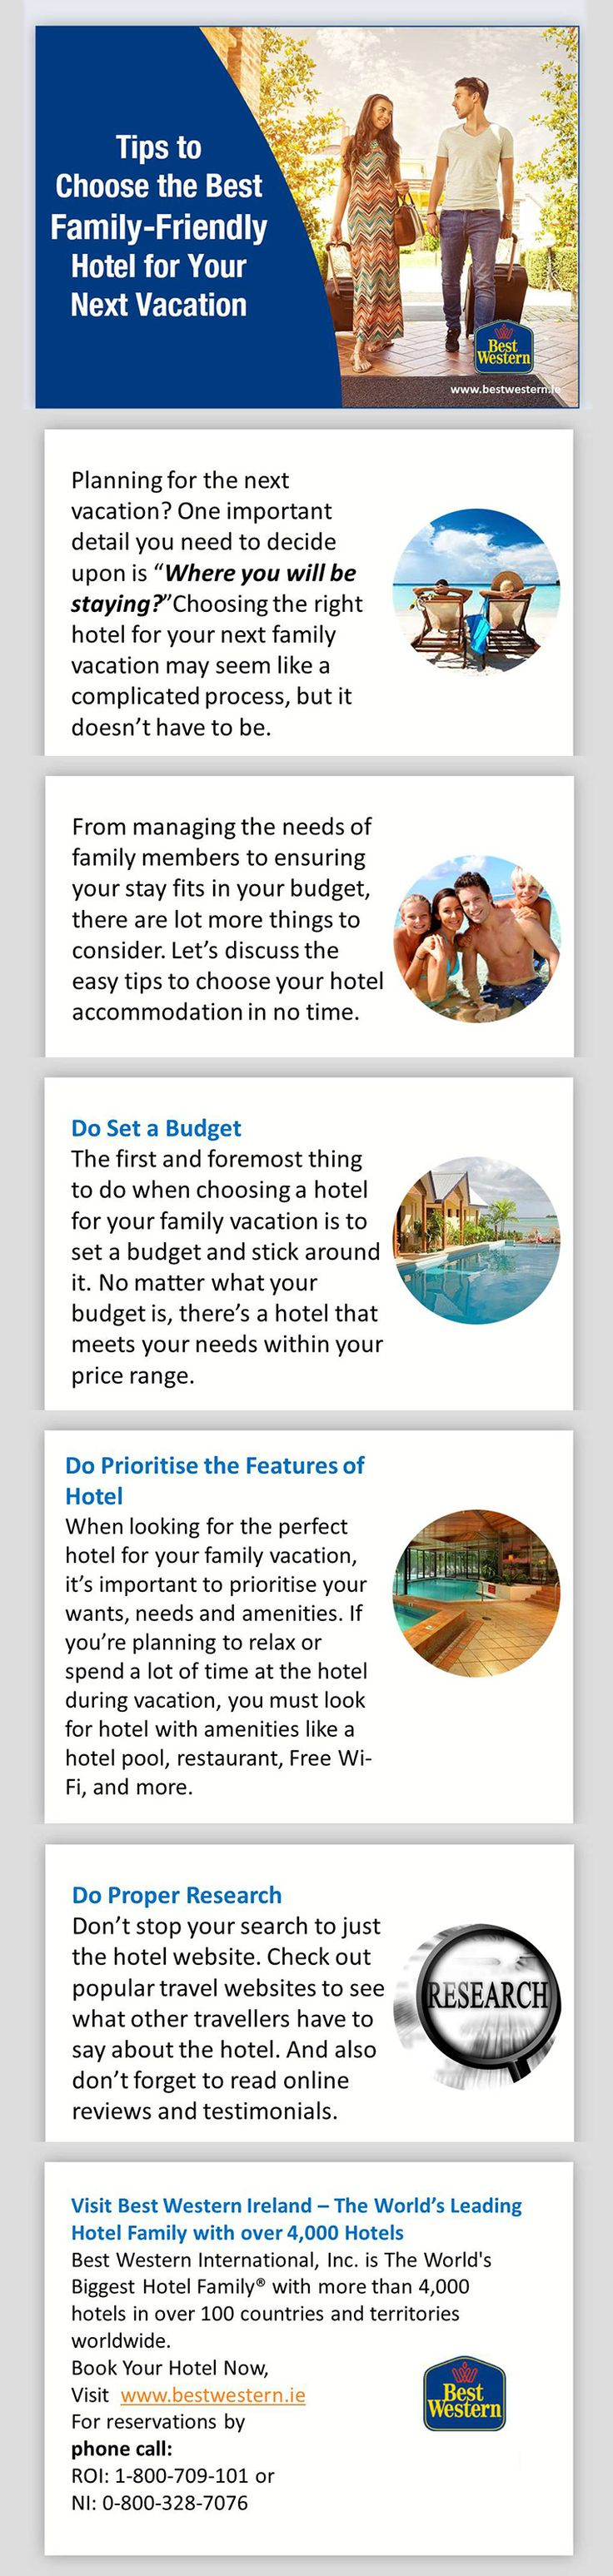 445 best business infographics images on pinterest